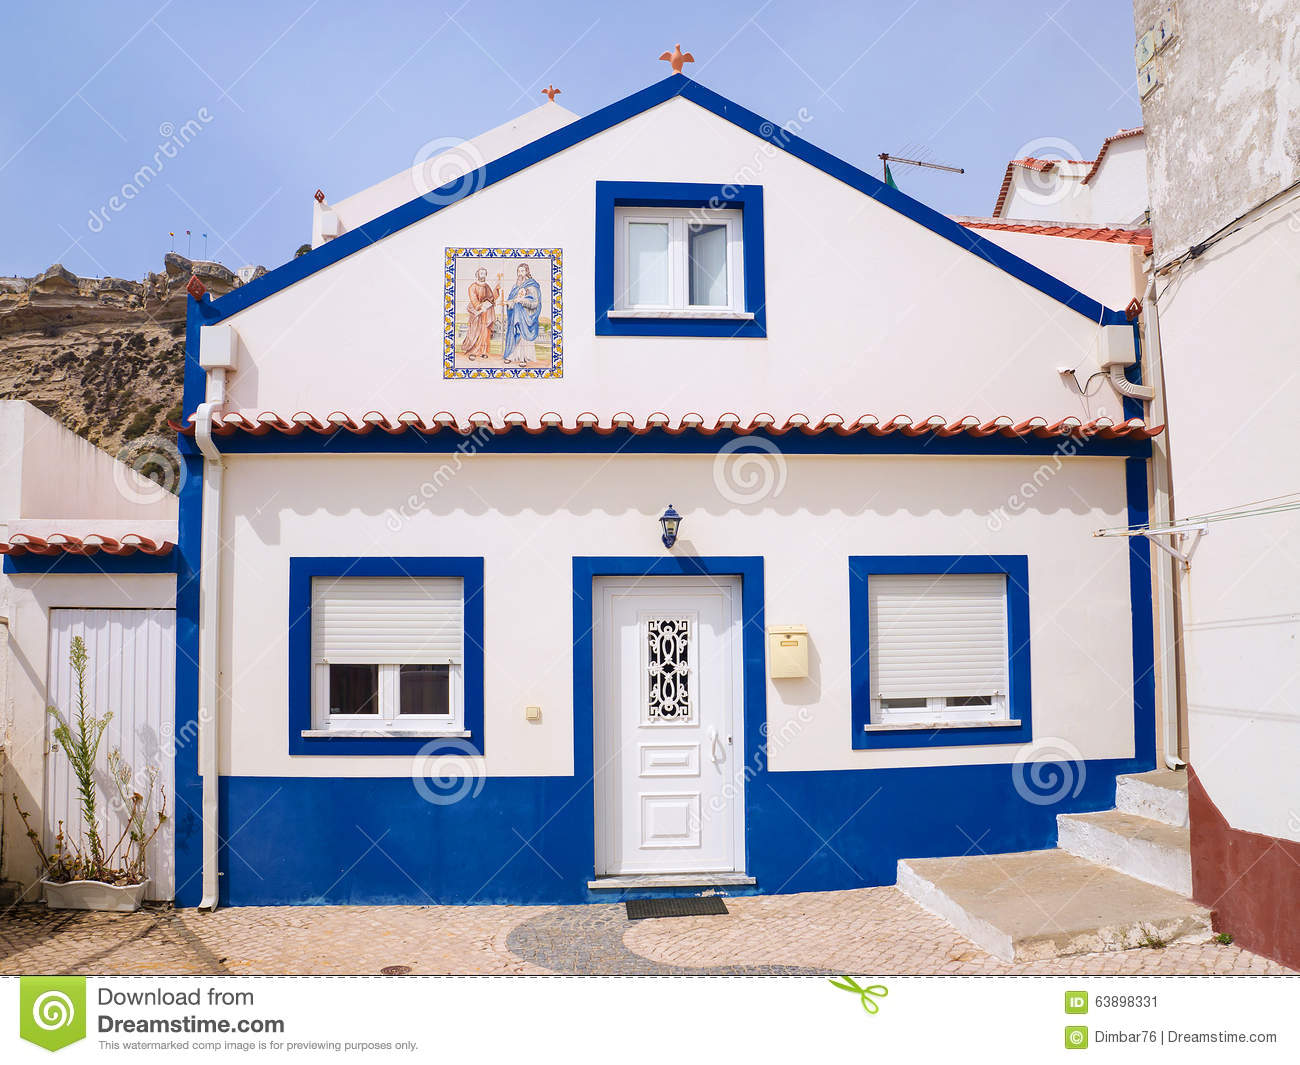 belle maison dans les rues de la ville de nazare au portugal image stock image du costa. Black Bedroom Furniture Sets. Home Design Ideas